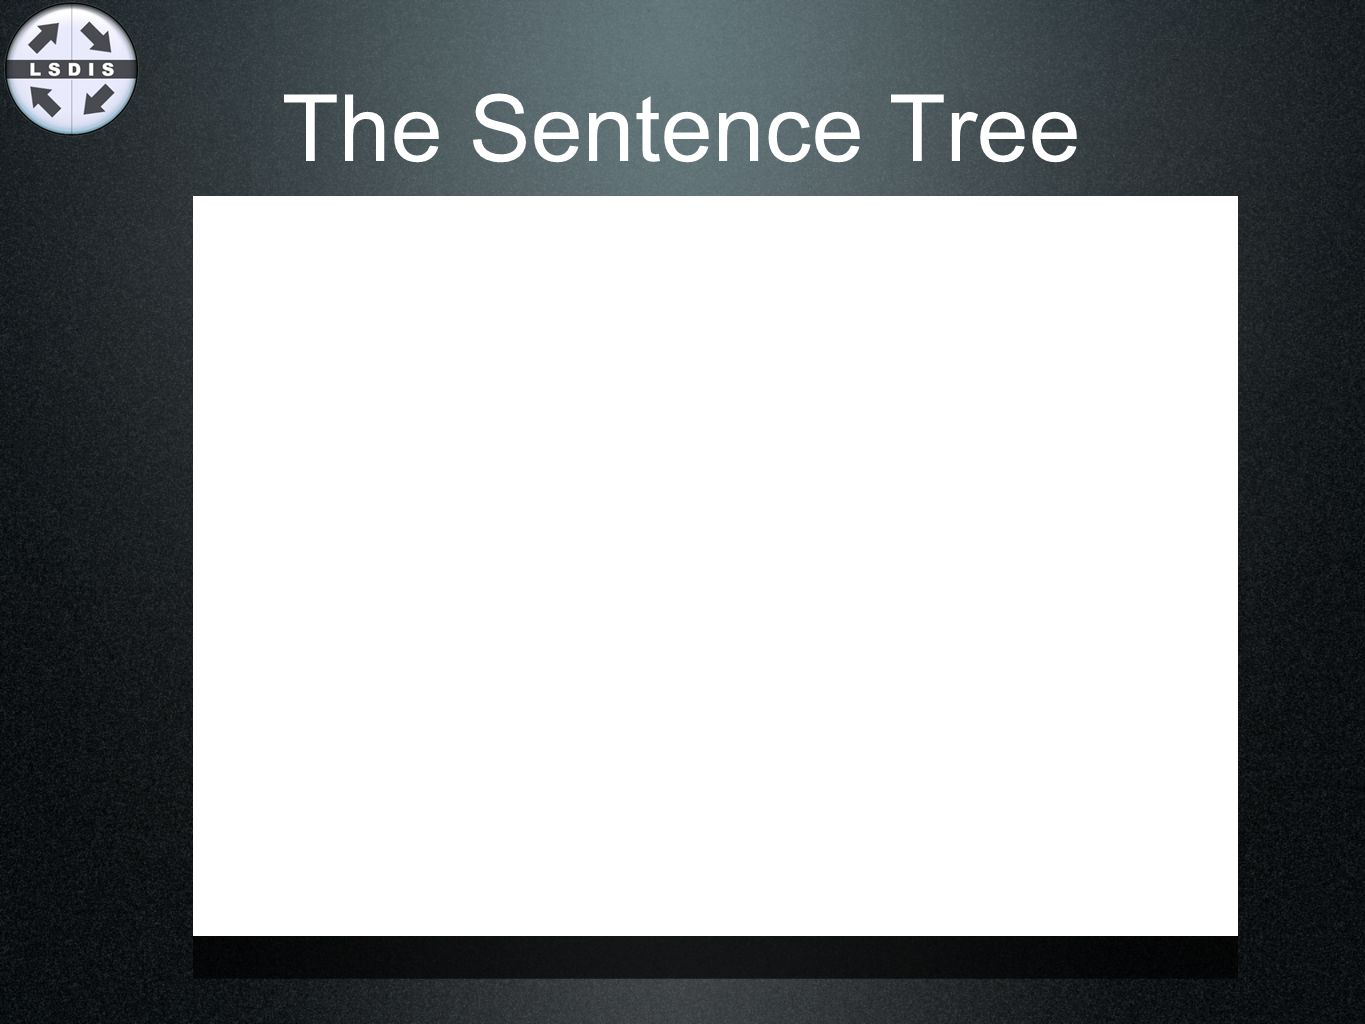 The Sentence Tree (ROOT [69.474] (S [69.371] (NP [20.560] (NNP [8.264] Tiger) (NNP [9.812] Woods)) (VP [47.672] (VBZ [11.074] donates) (PP [31.541] (T